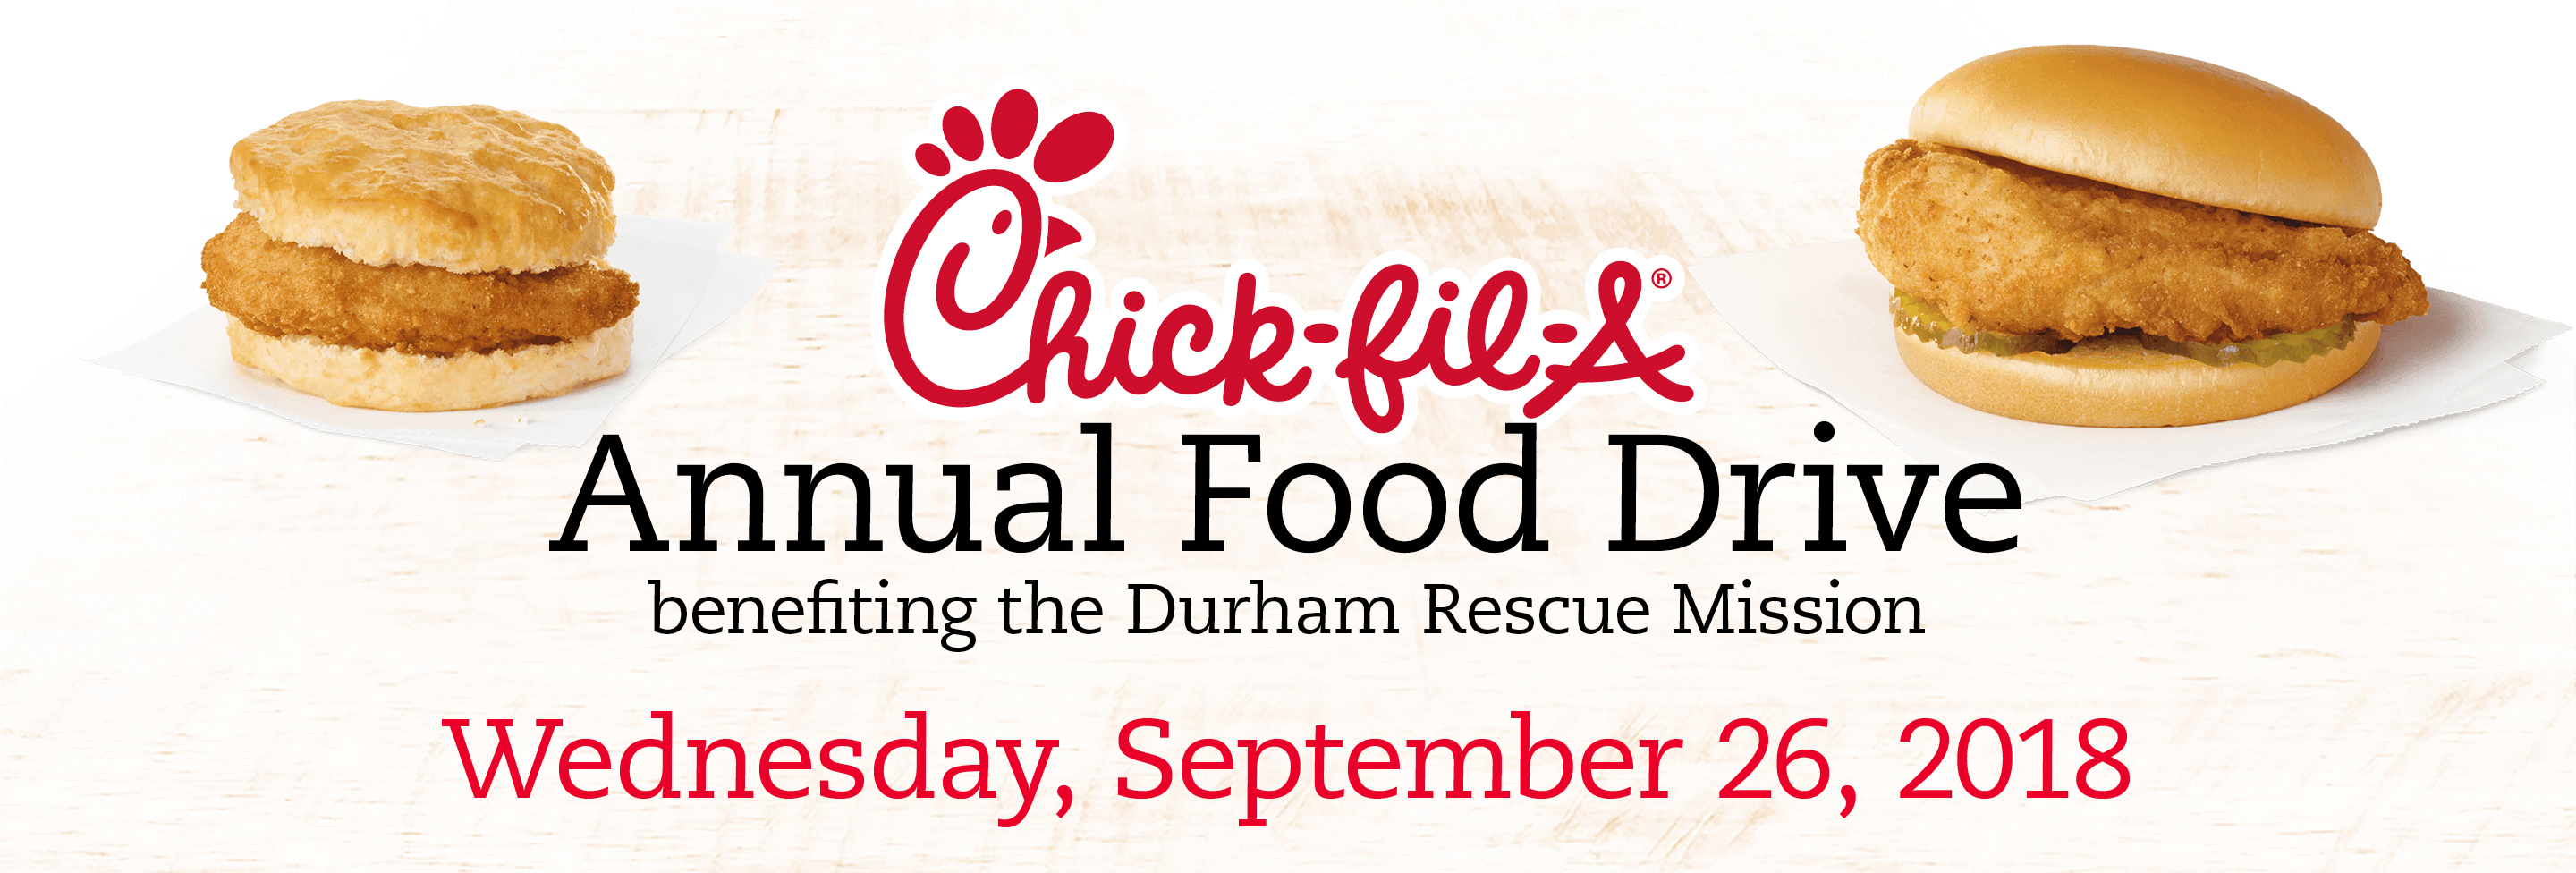 Chick Fil A Food Drive Benefitting Durham Rescue Mission